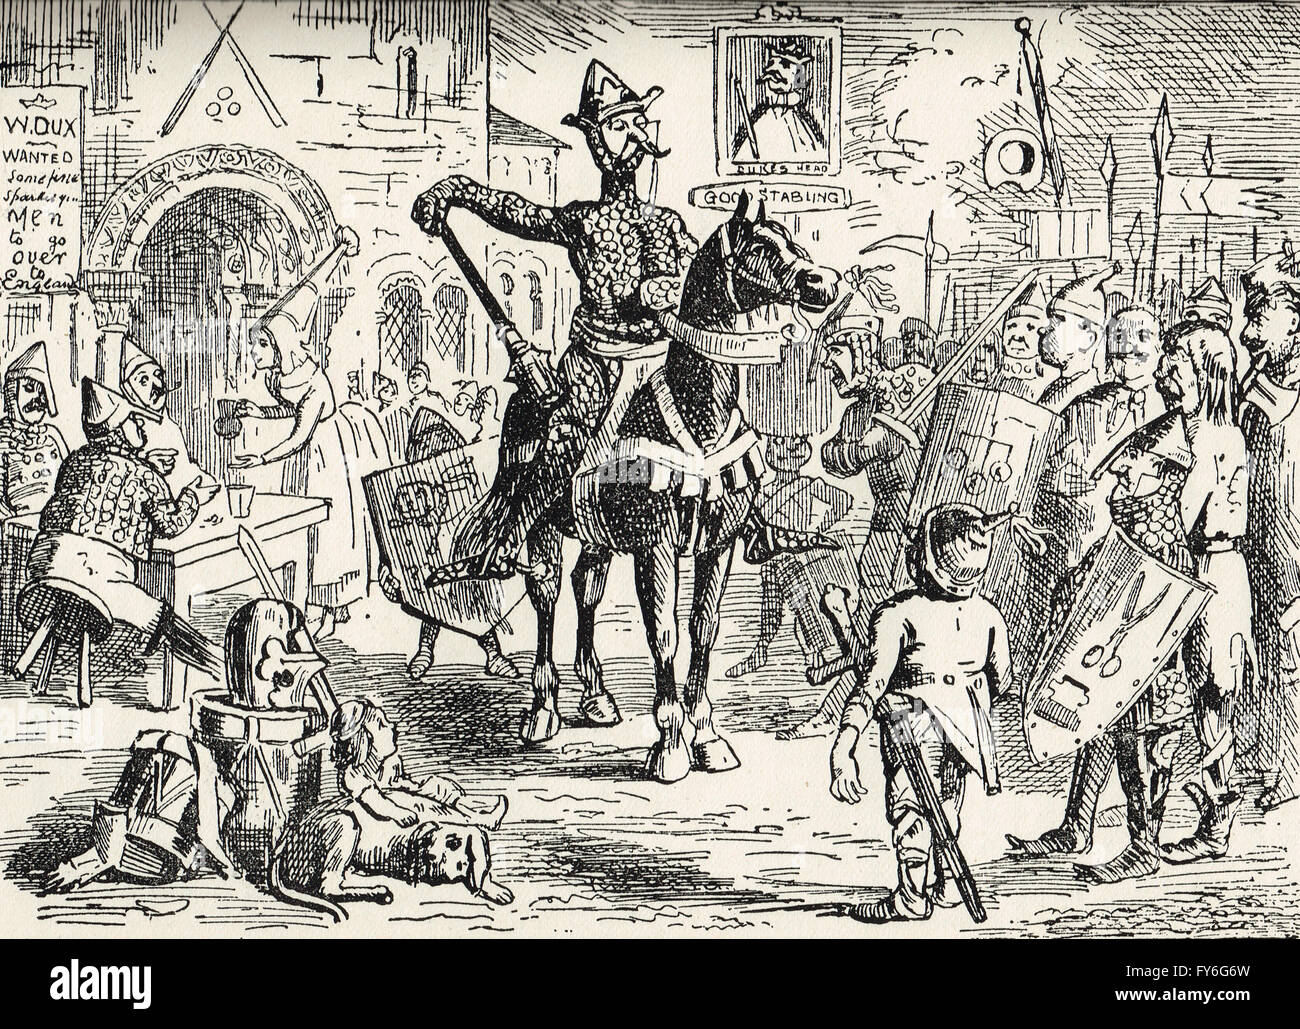 William the Conqueror recruiting for the invasion of Britain by John Leech - Stock Image